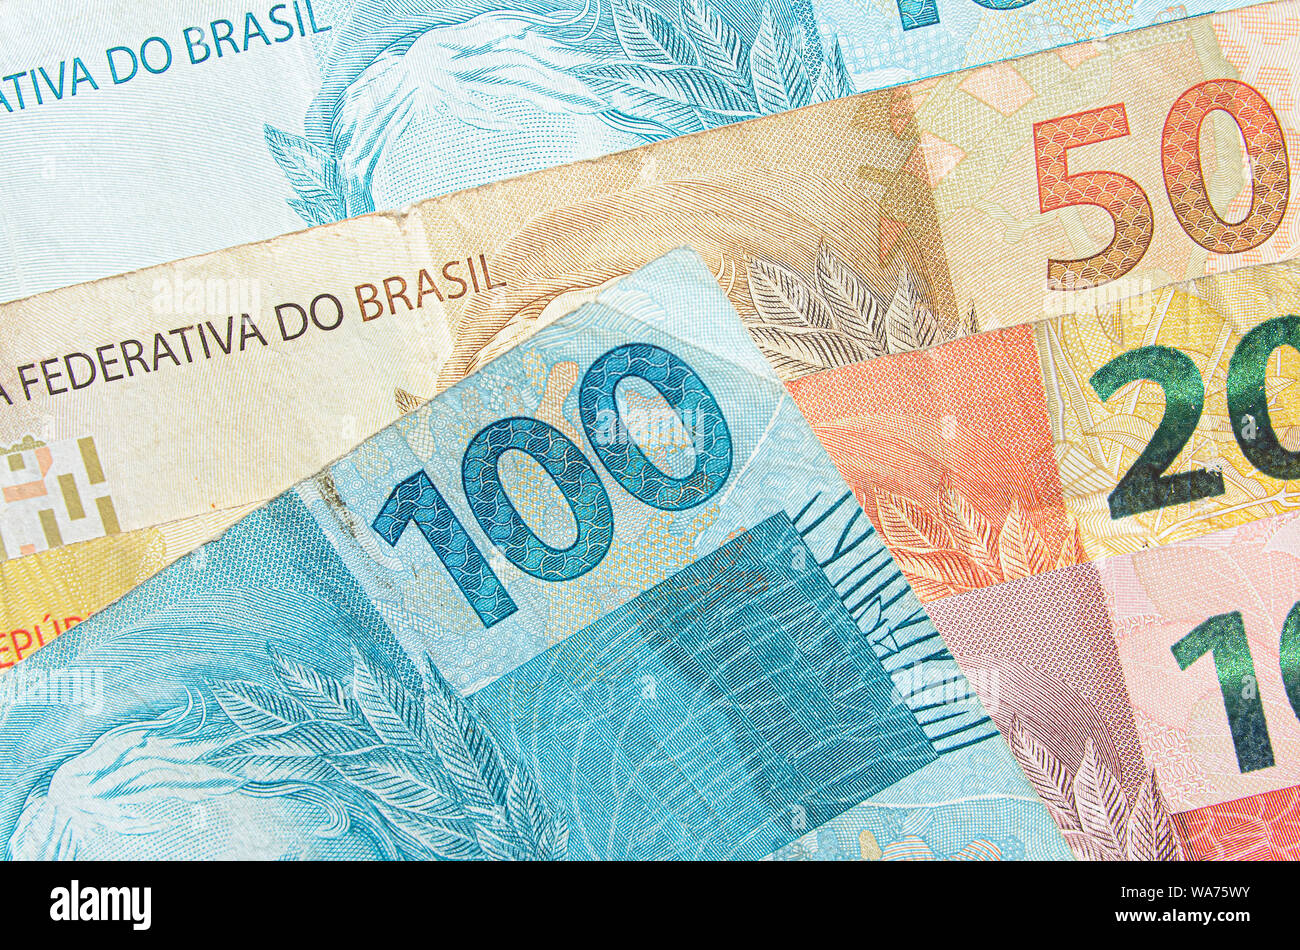 Brazilian real banknotes background. 10, 20, 50, 100 reais brl. Brazilian money, real notes. Macro photo. Stock Photo